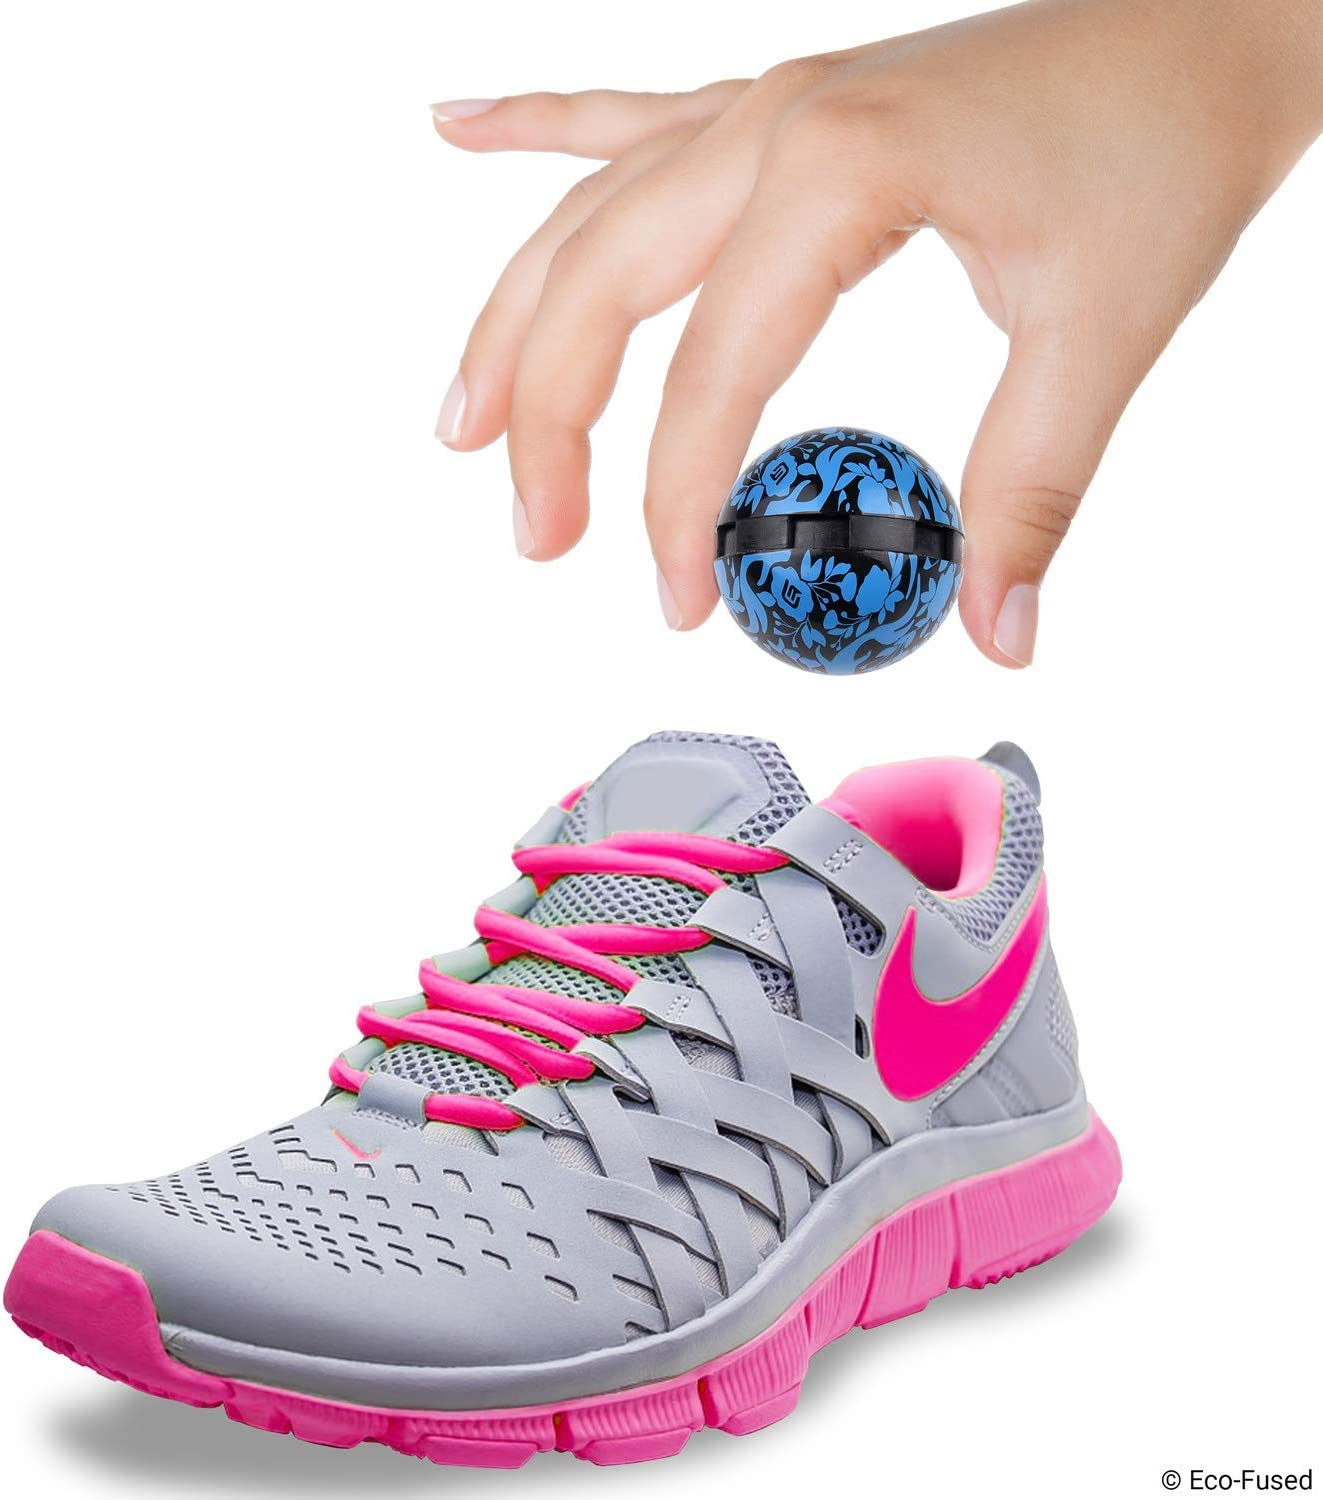 Eco-Fused Deodorizing Balls for Sneakers Also Great for Homes Neutralizes Sweat Odor Easy Twist Lock//Open Mechanism 8 Pack Gym Bags Lockers Offices and Cars Ocean Fresh